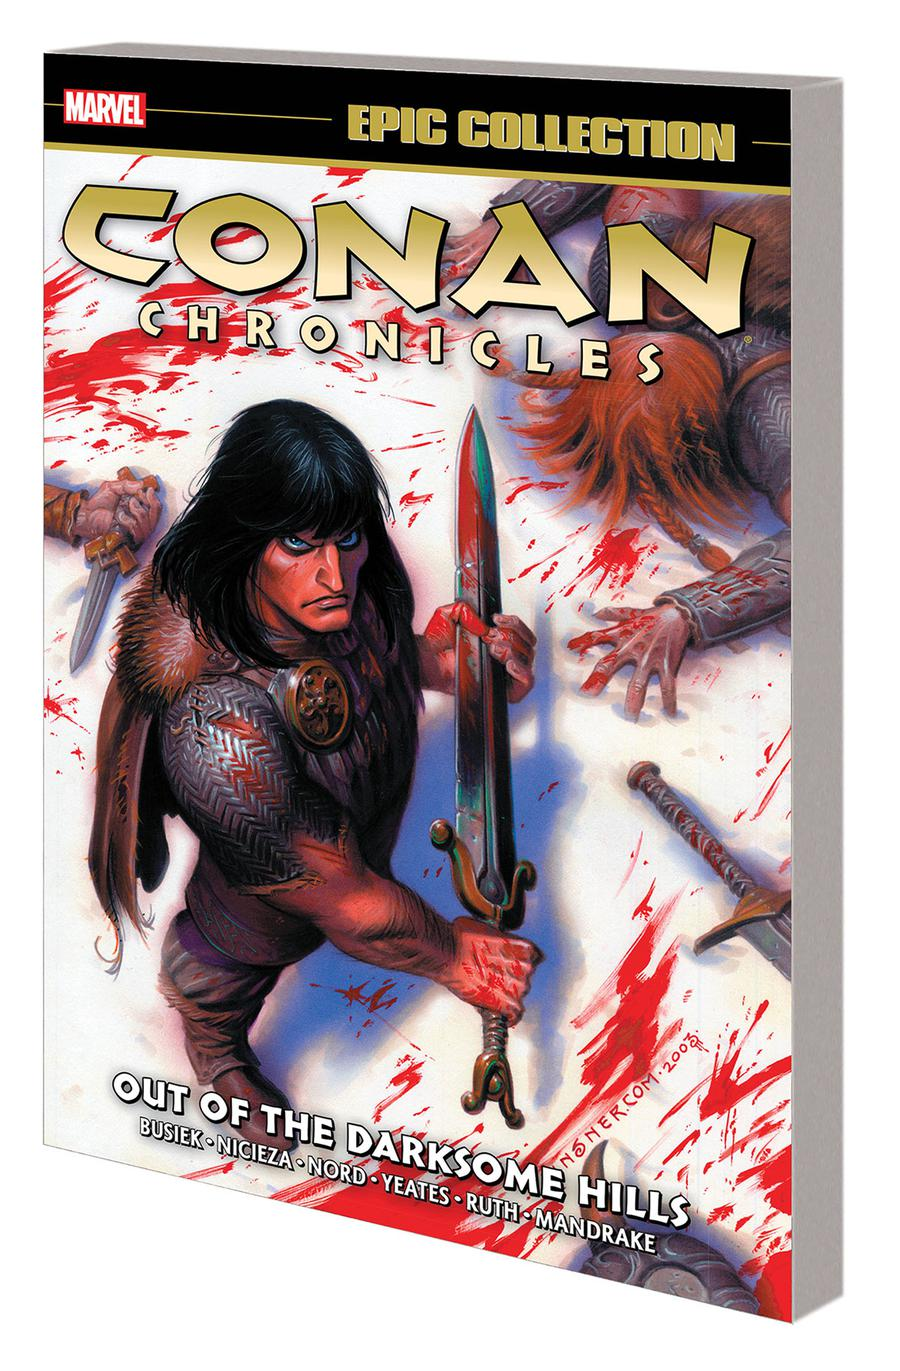 Conan Chronicles Epic Collection Vol 1 Out Of The Darksome Hills TP